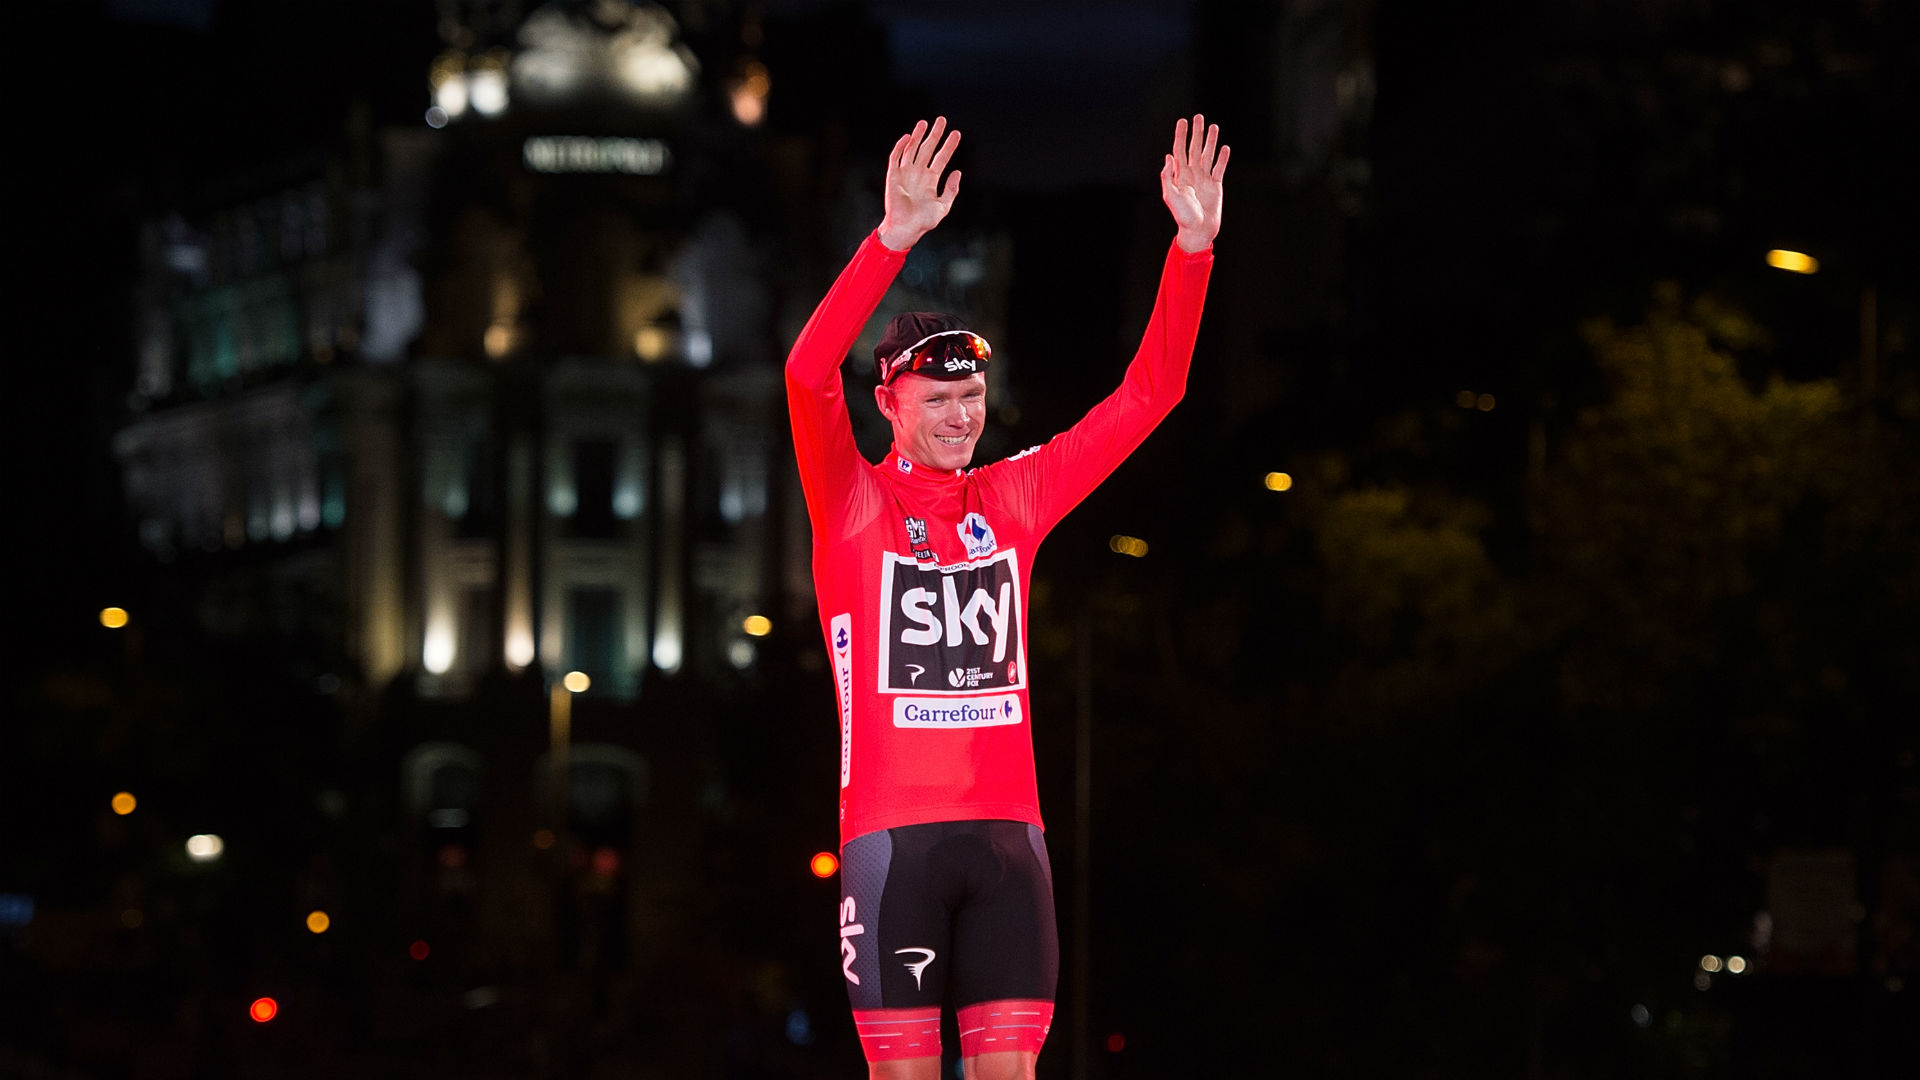 Froome awarded 2011 Vuelta title as Cobo is stripped of victory